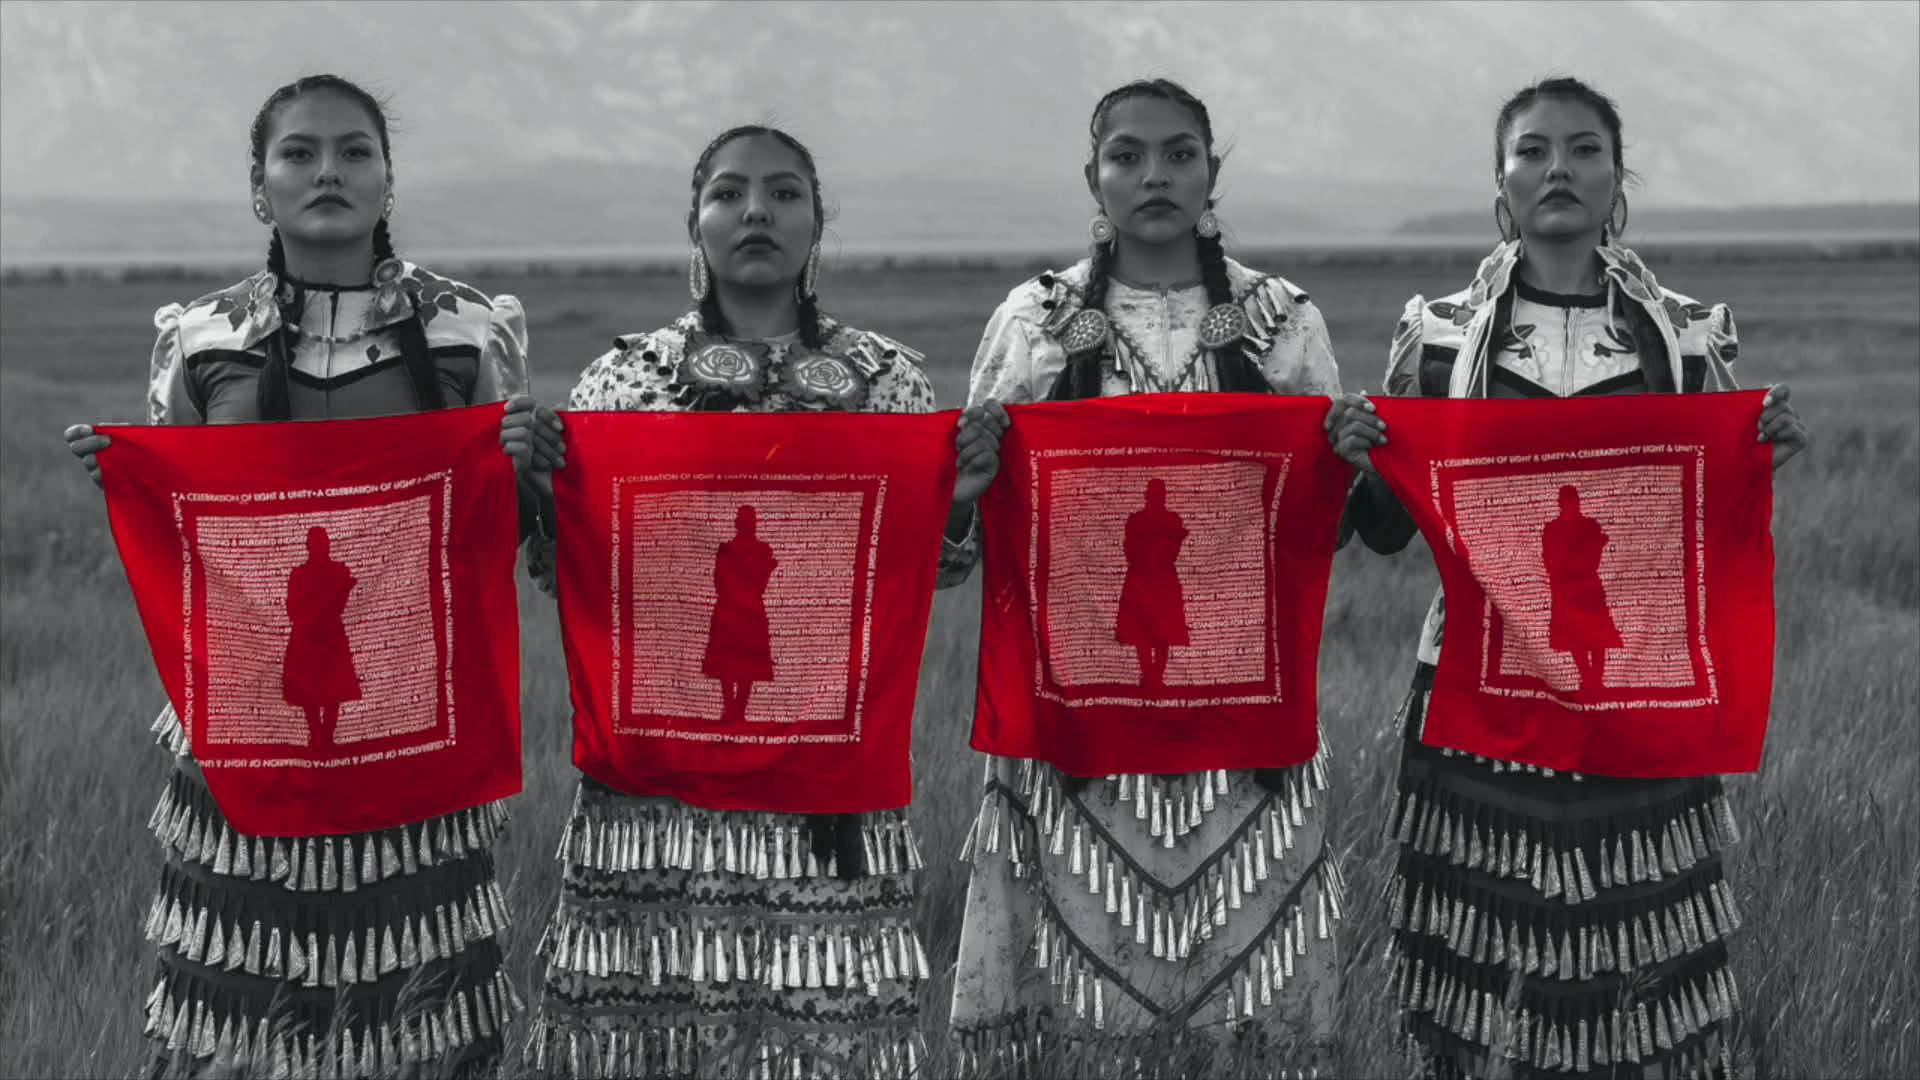 Jingle Dress Dancers hold up a scarf representing Missing and Murdered Indigenous Women. Provo, UT